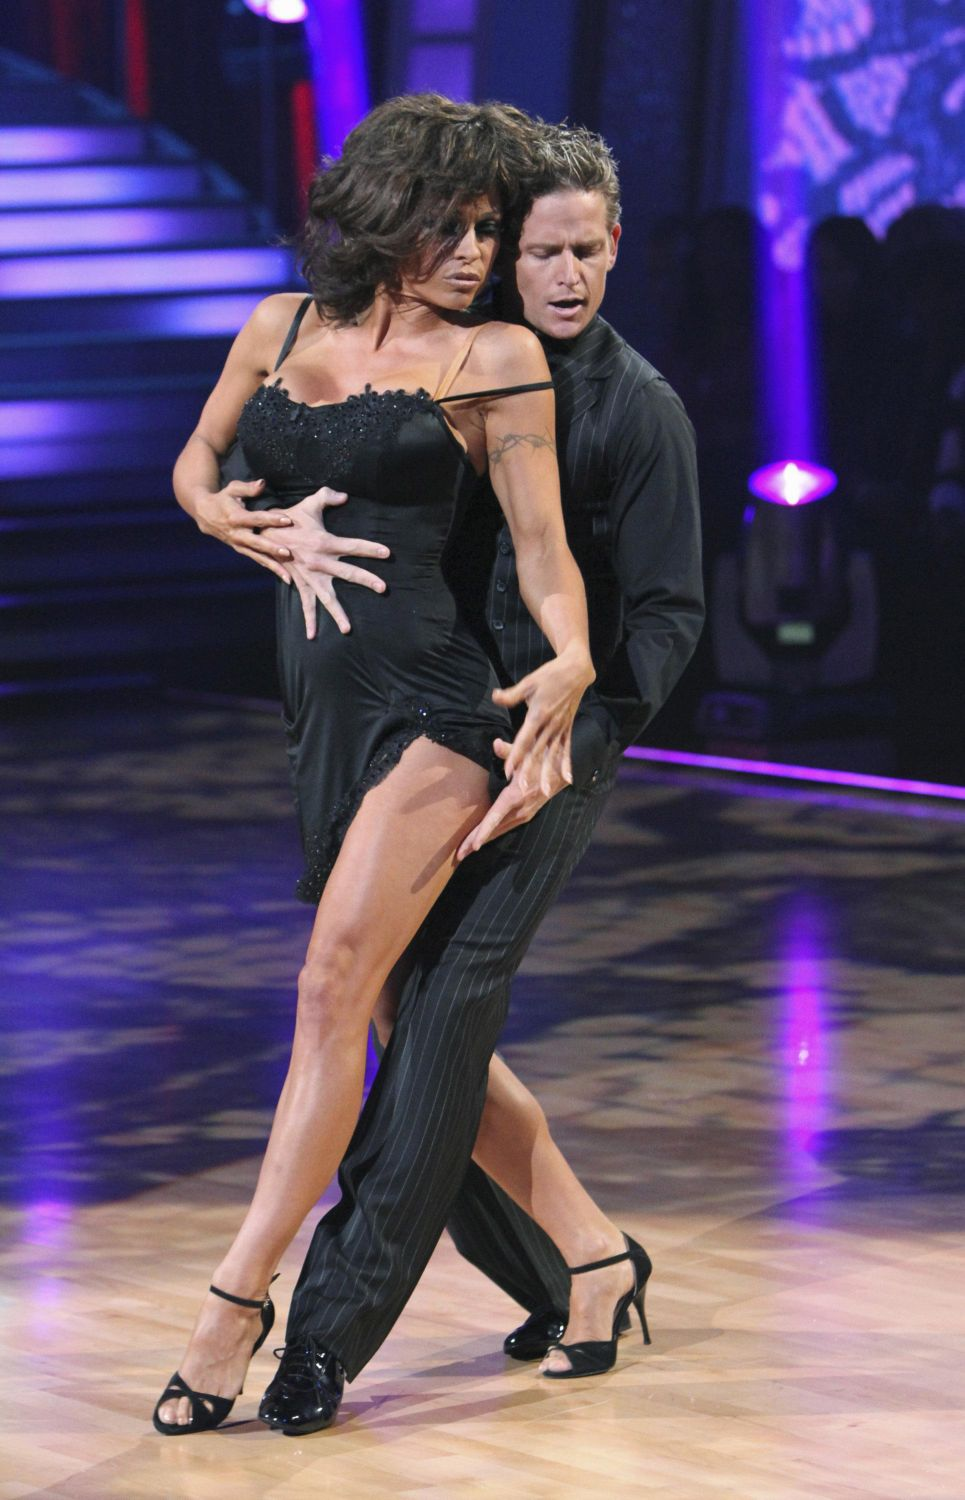 pamela anderson dancing with the stars - photo #6